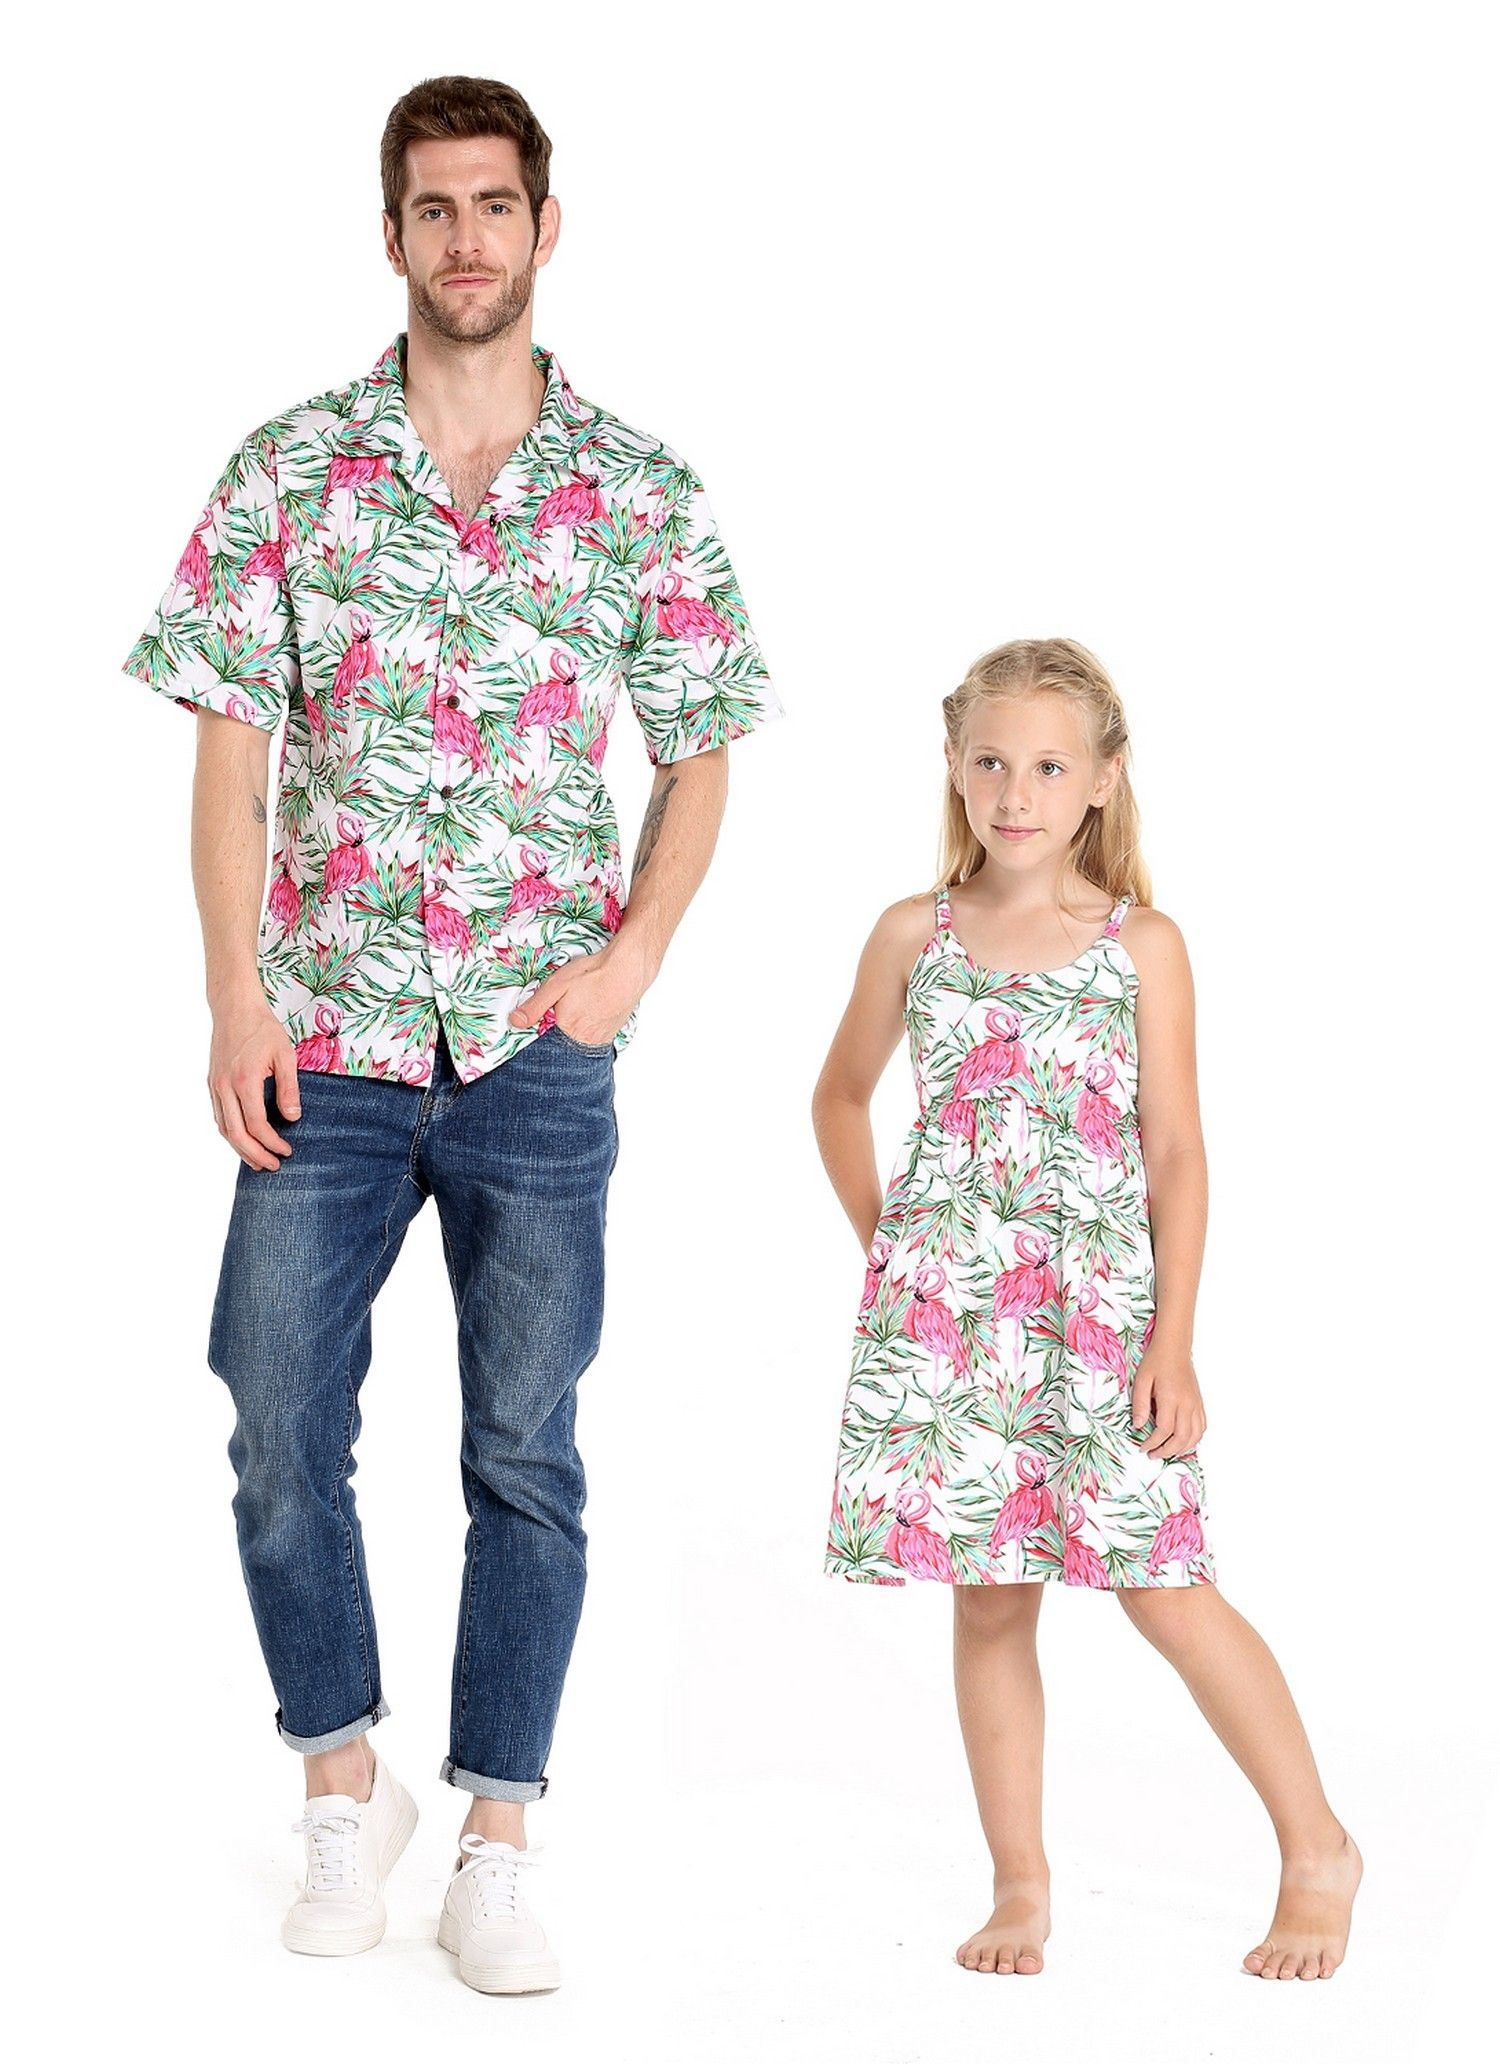 ff83c019 Christmas in Hawaii Santa Collection Couple Matching Outfit. Couple Matching  Men Aloha Shirt and Girls' Dress in Flamingo in Love